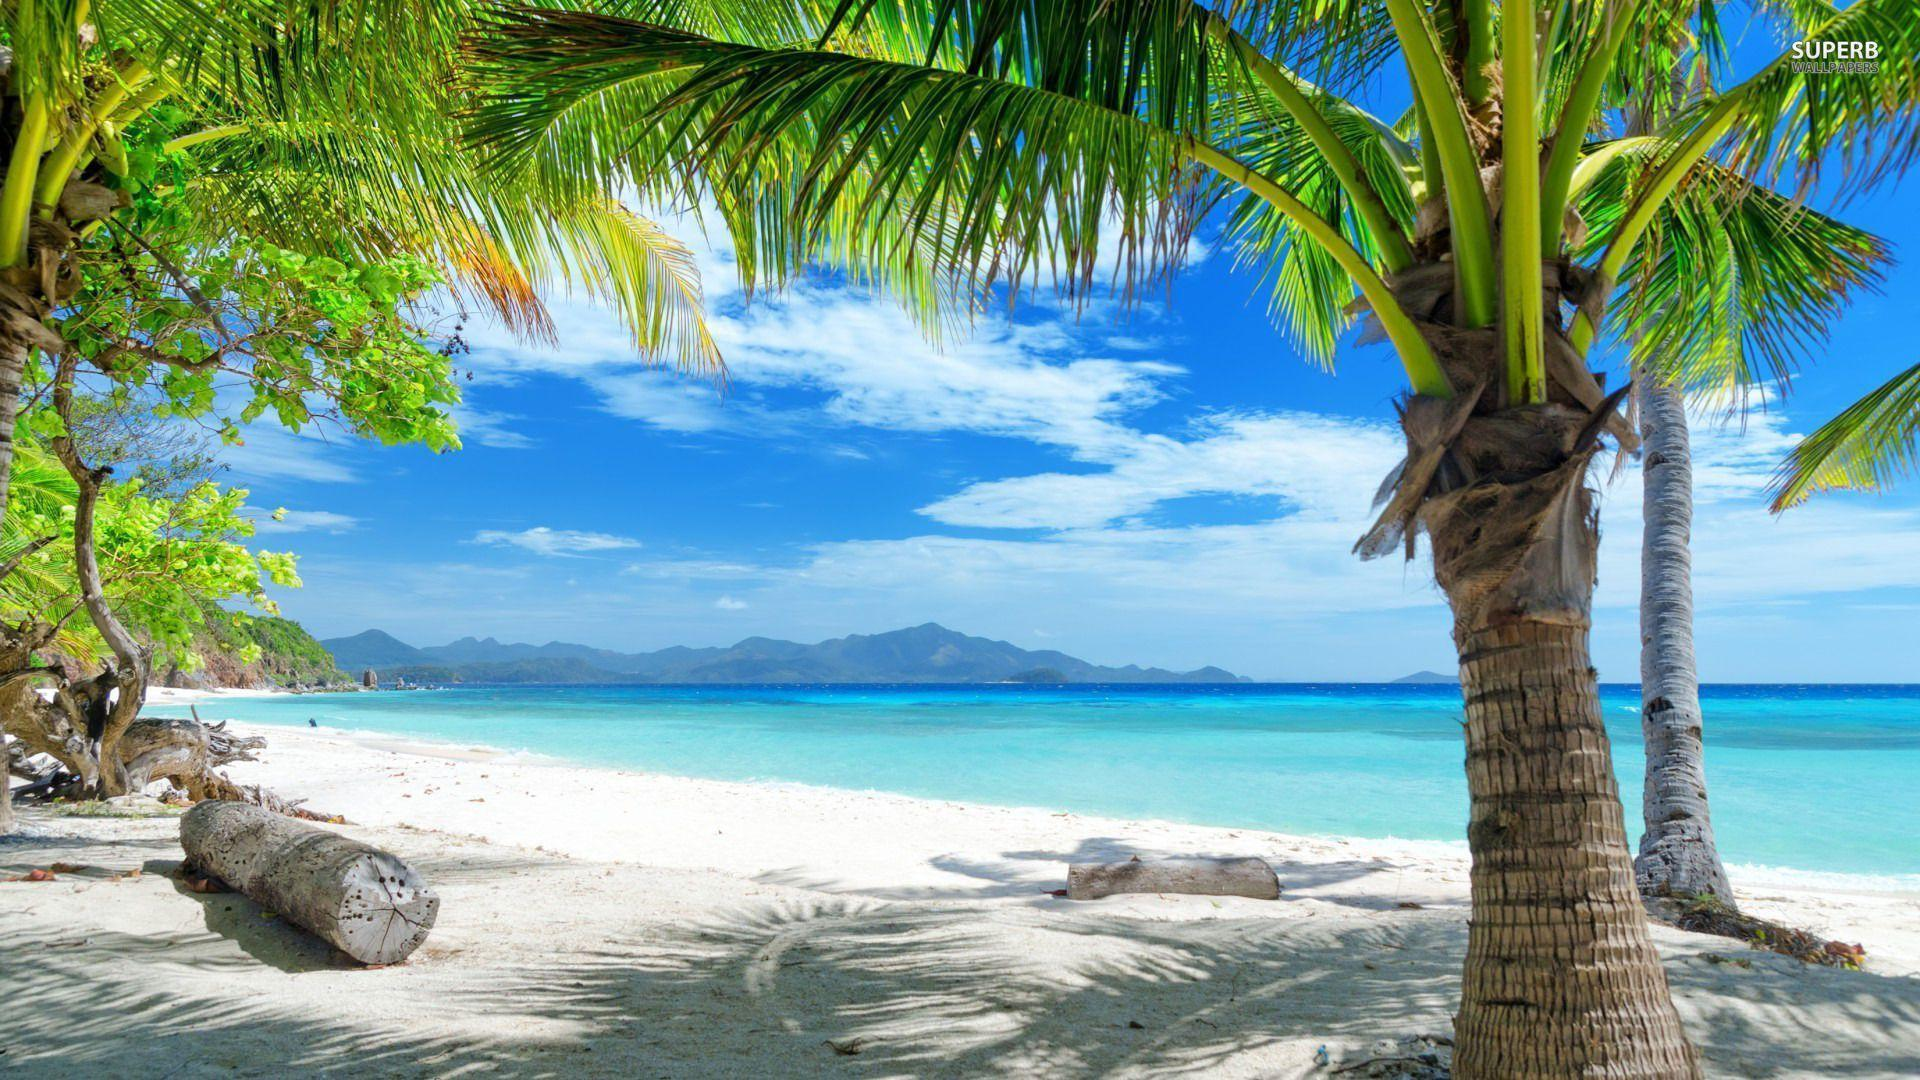 Tropical Beach | Download HD Wallpapers